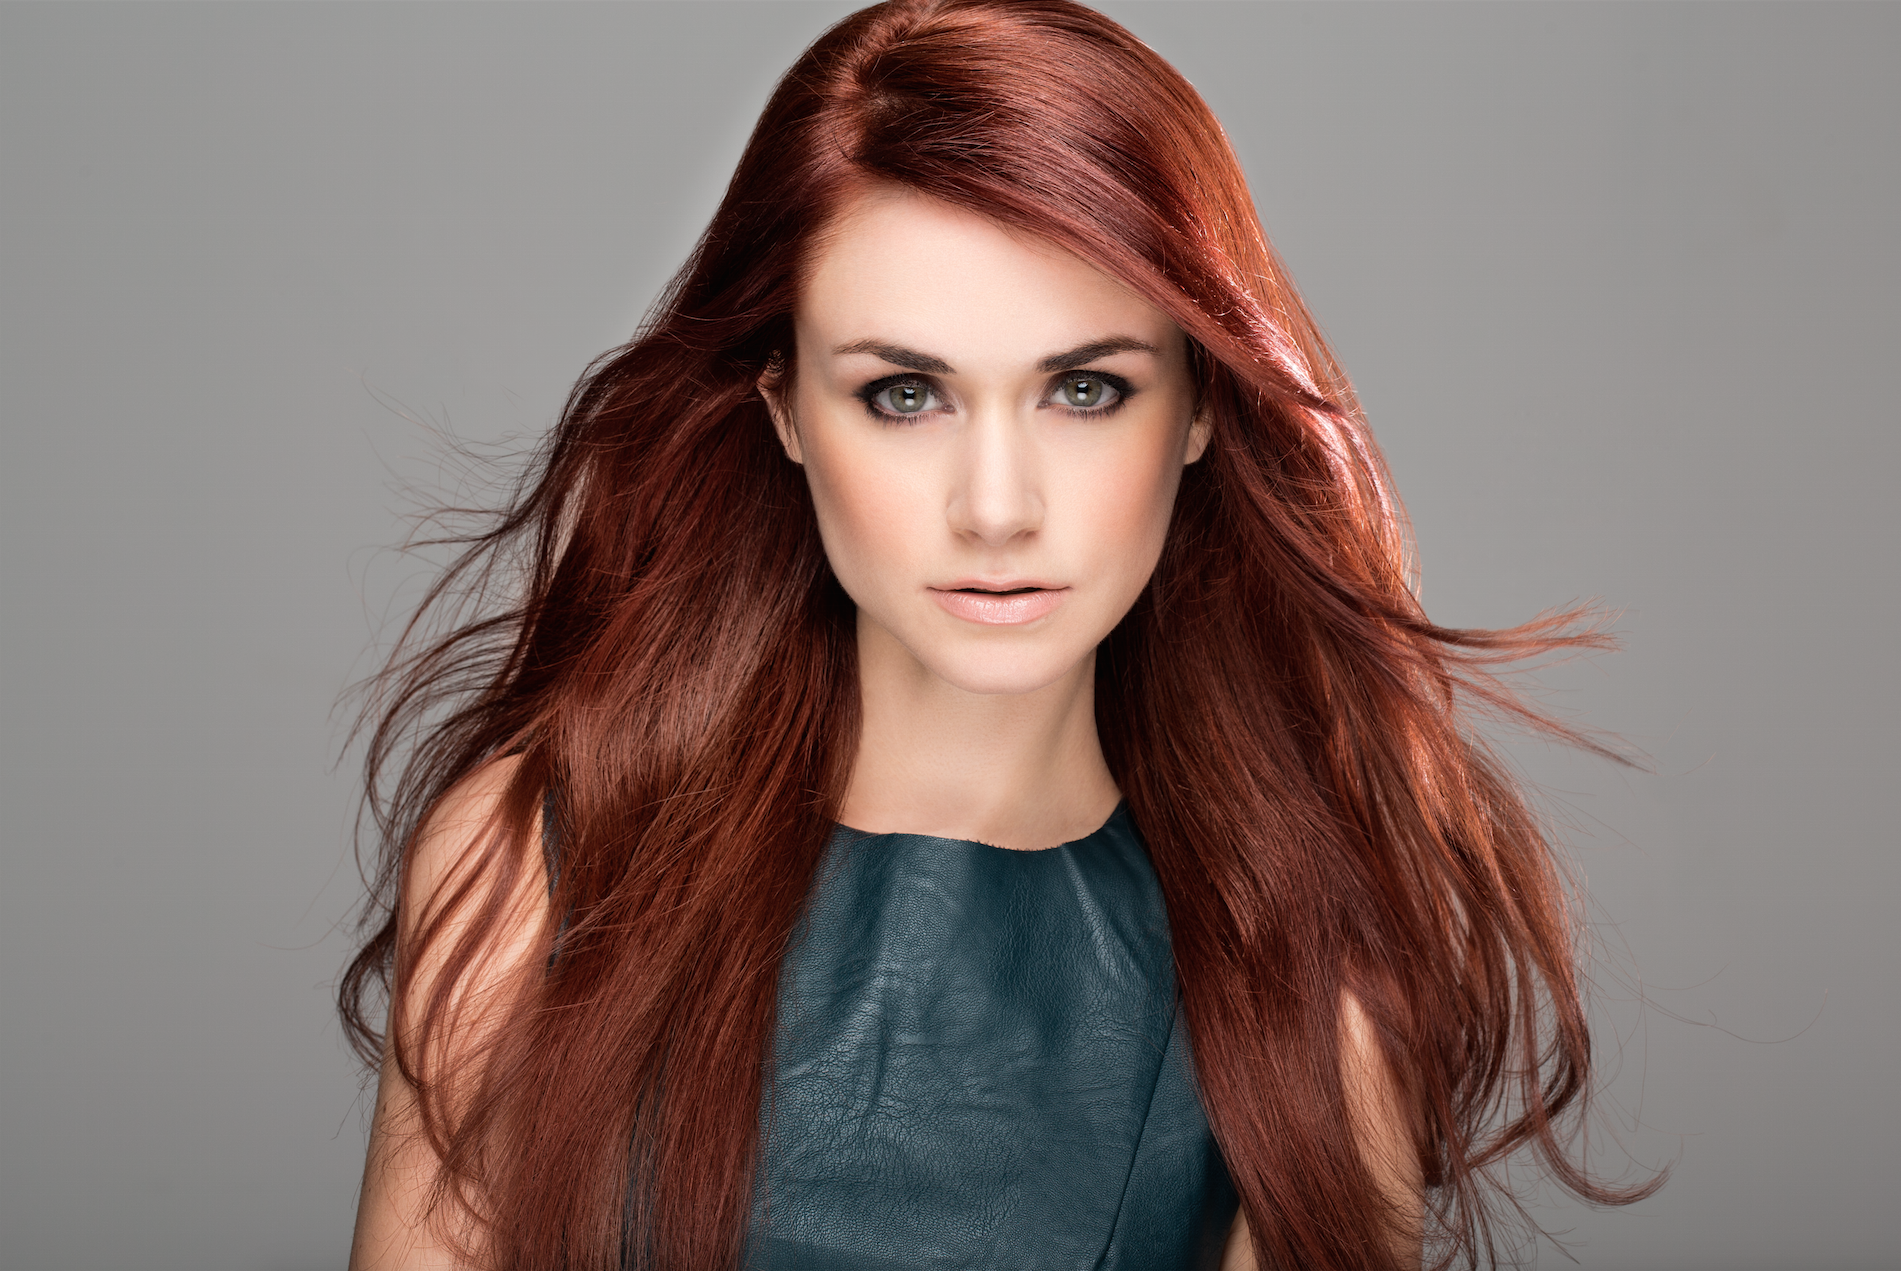 Hair Salon For Hair Coloring : How to Pick the Right Hair Color - Salon Price Lady